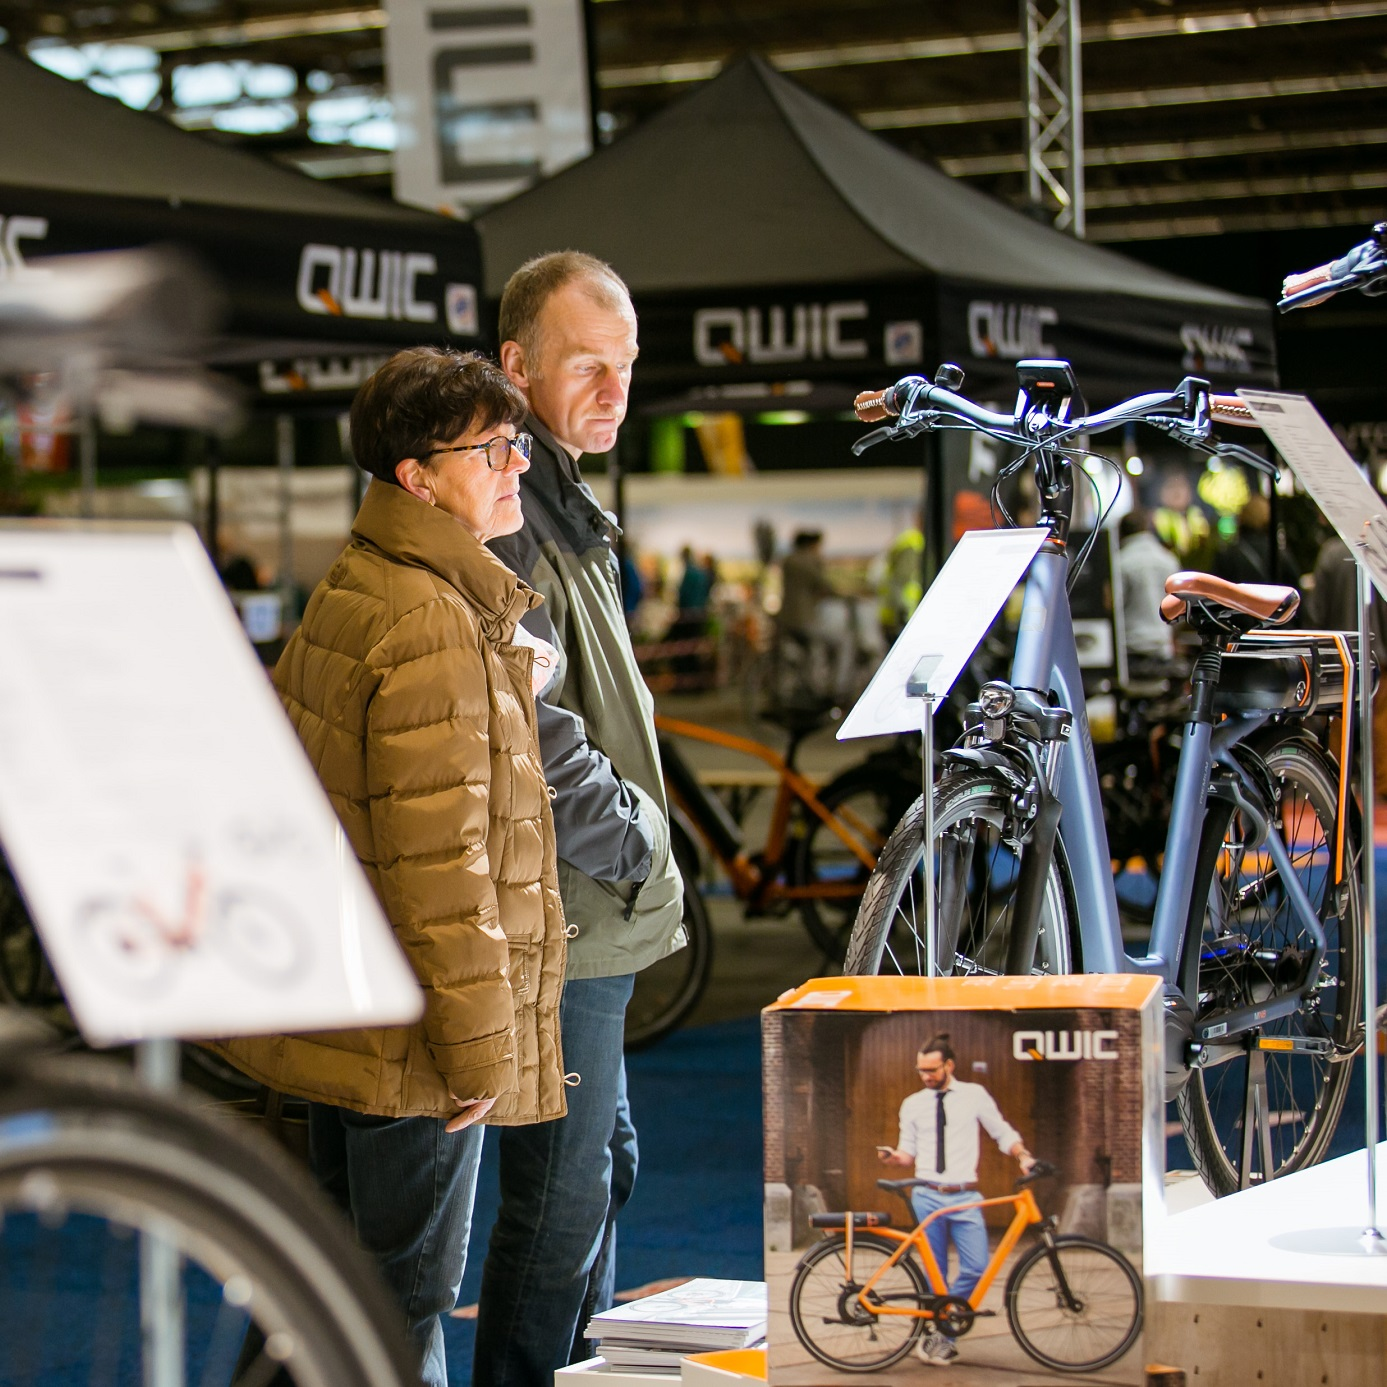 Compare all the latest e-bikes and accessories at the Challenge.